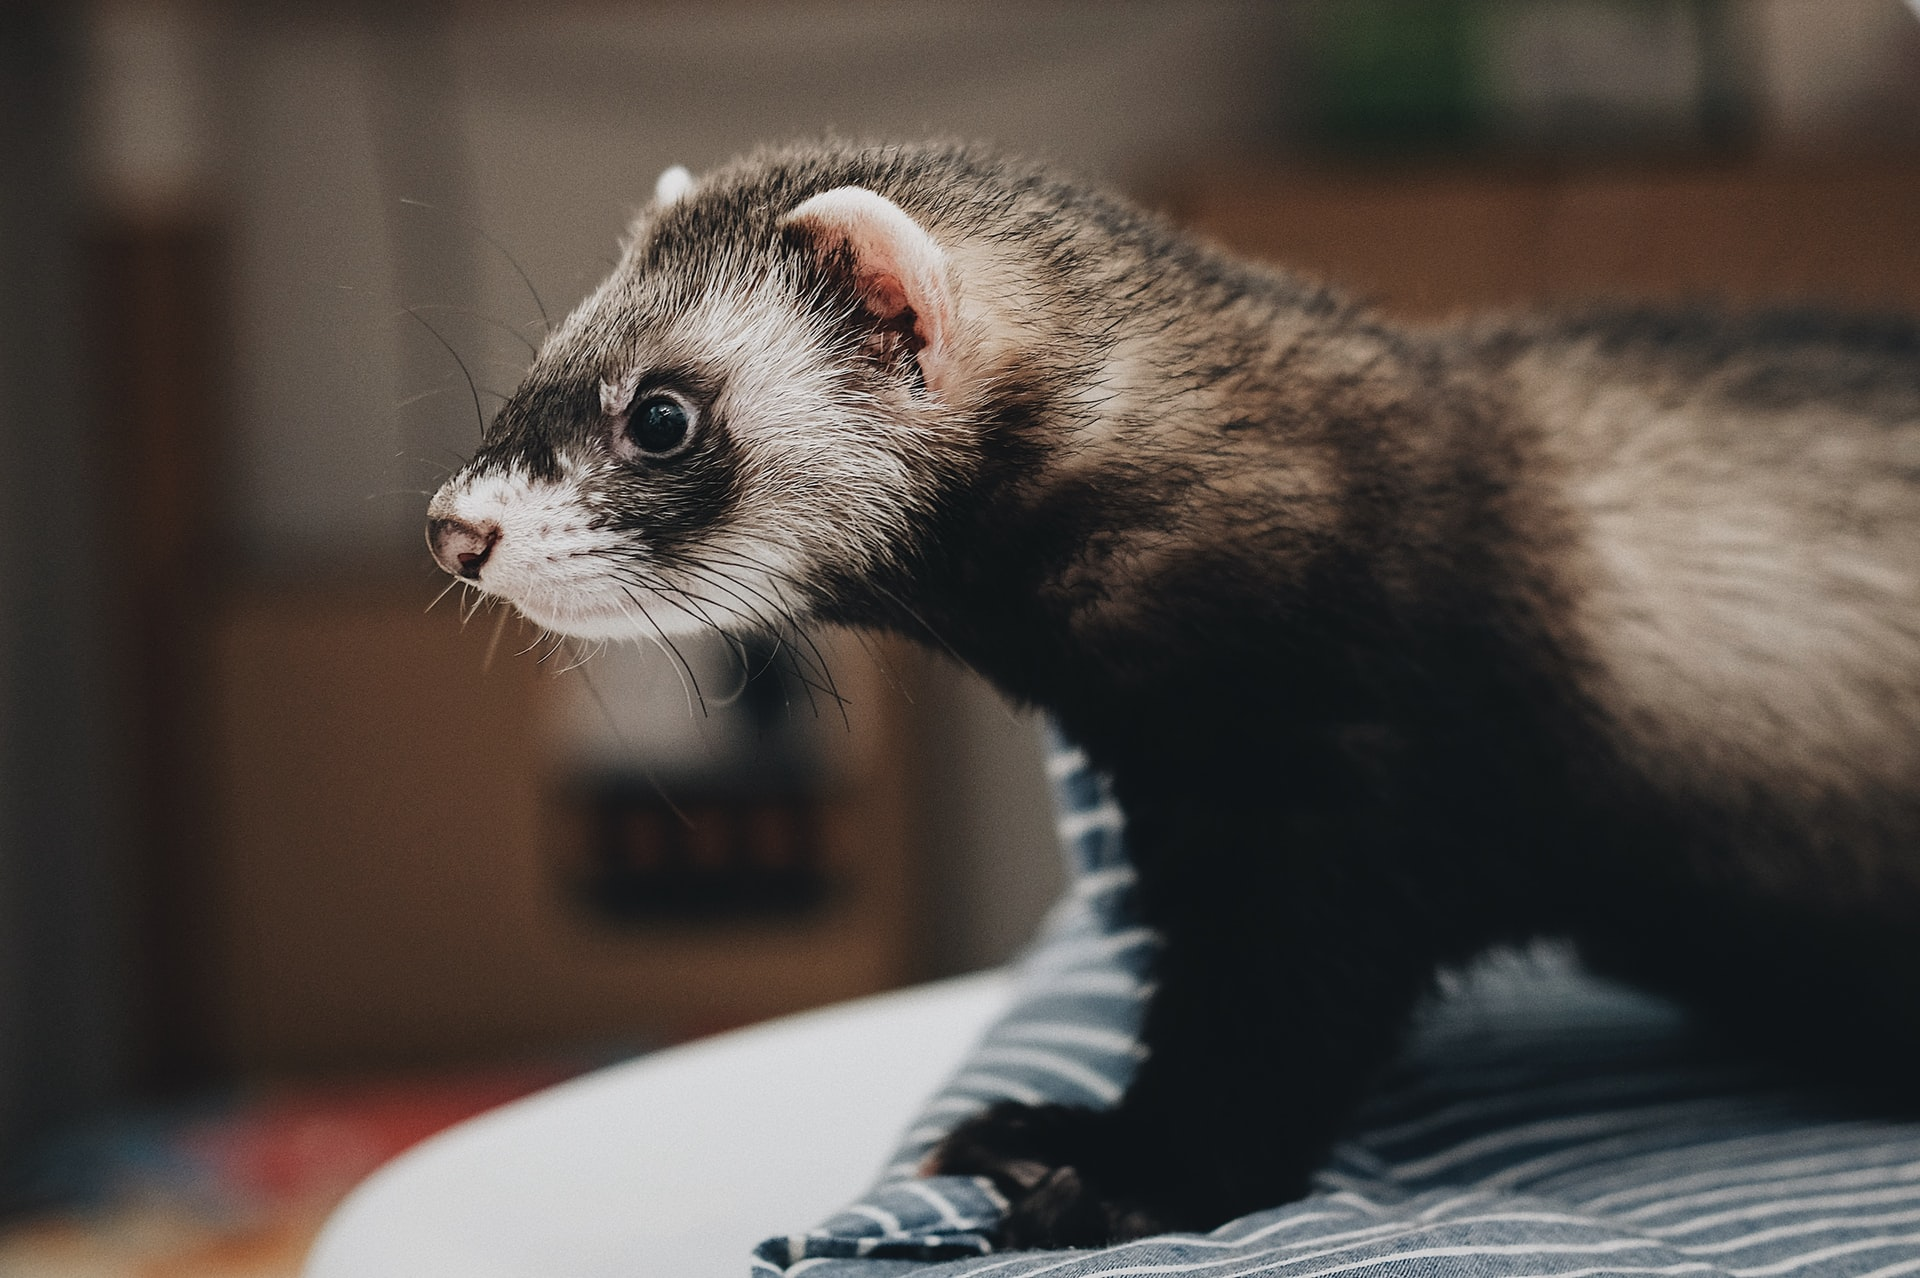 Ferret - Before you buy